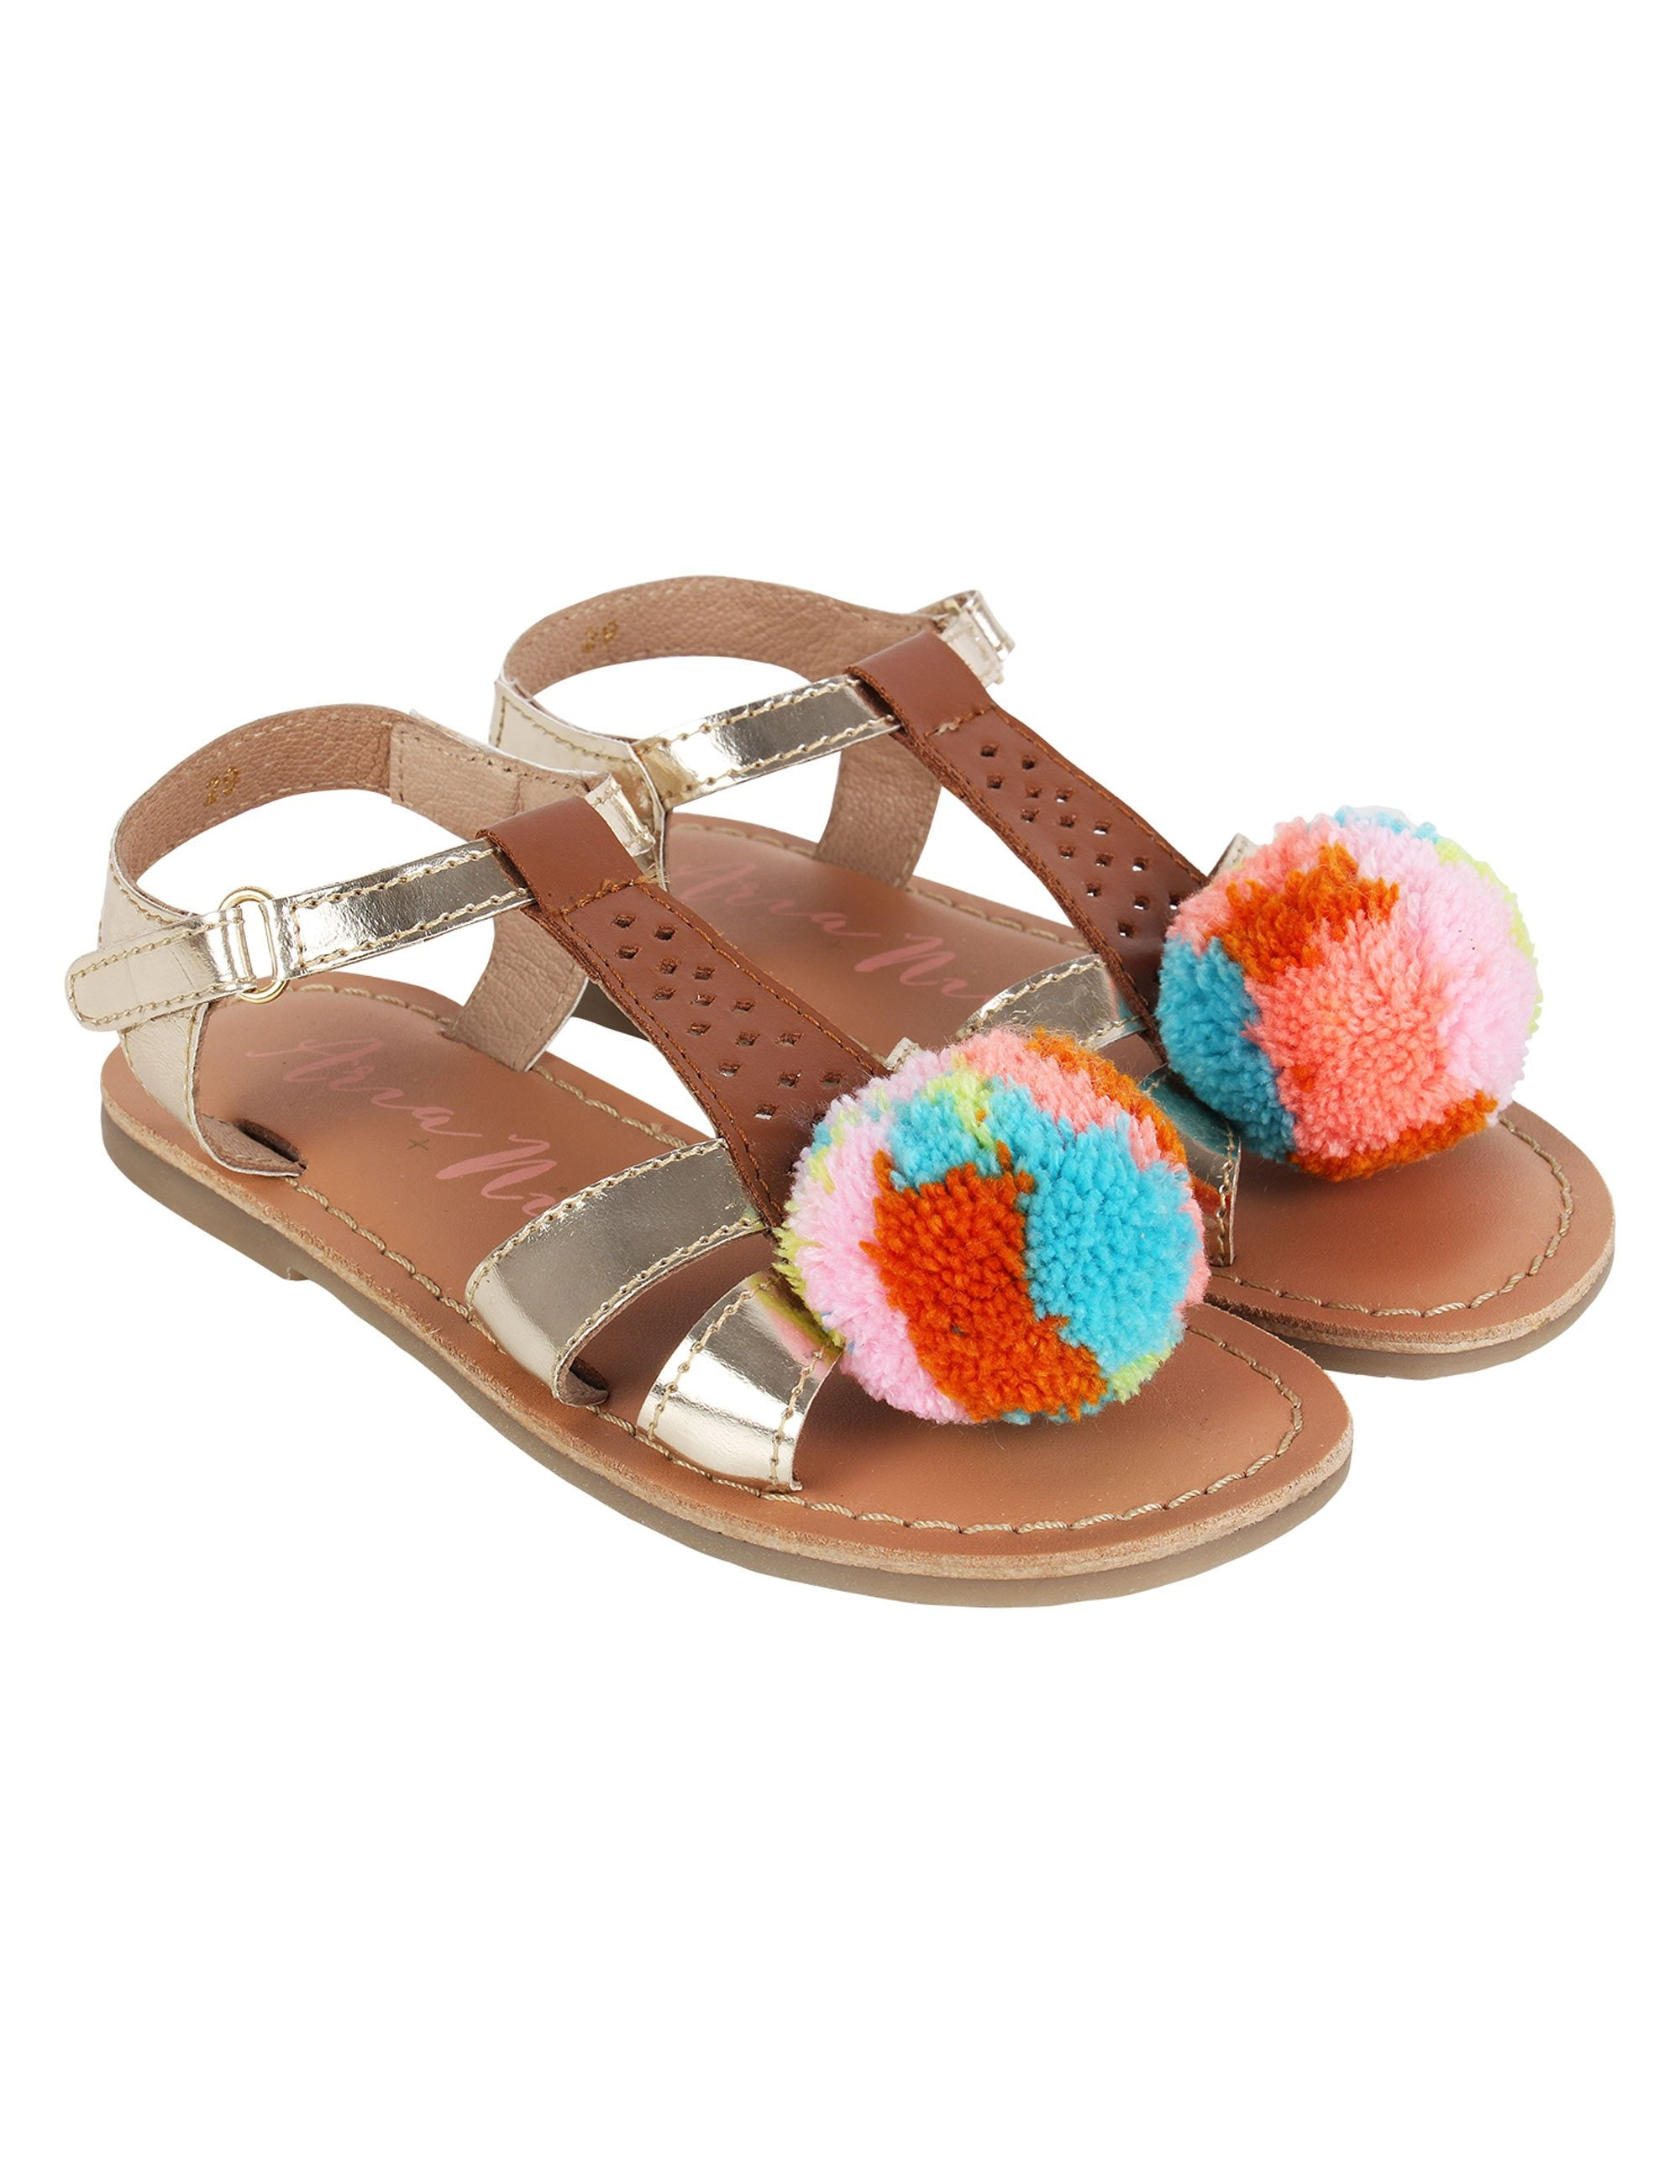 Pom Pom Flats for Girls